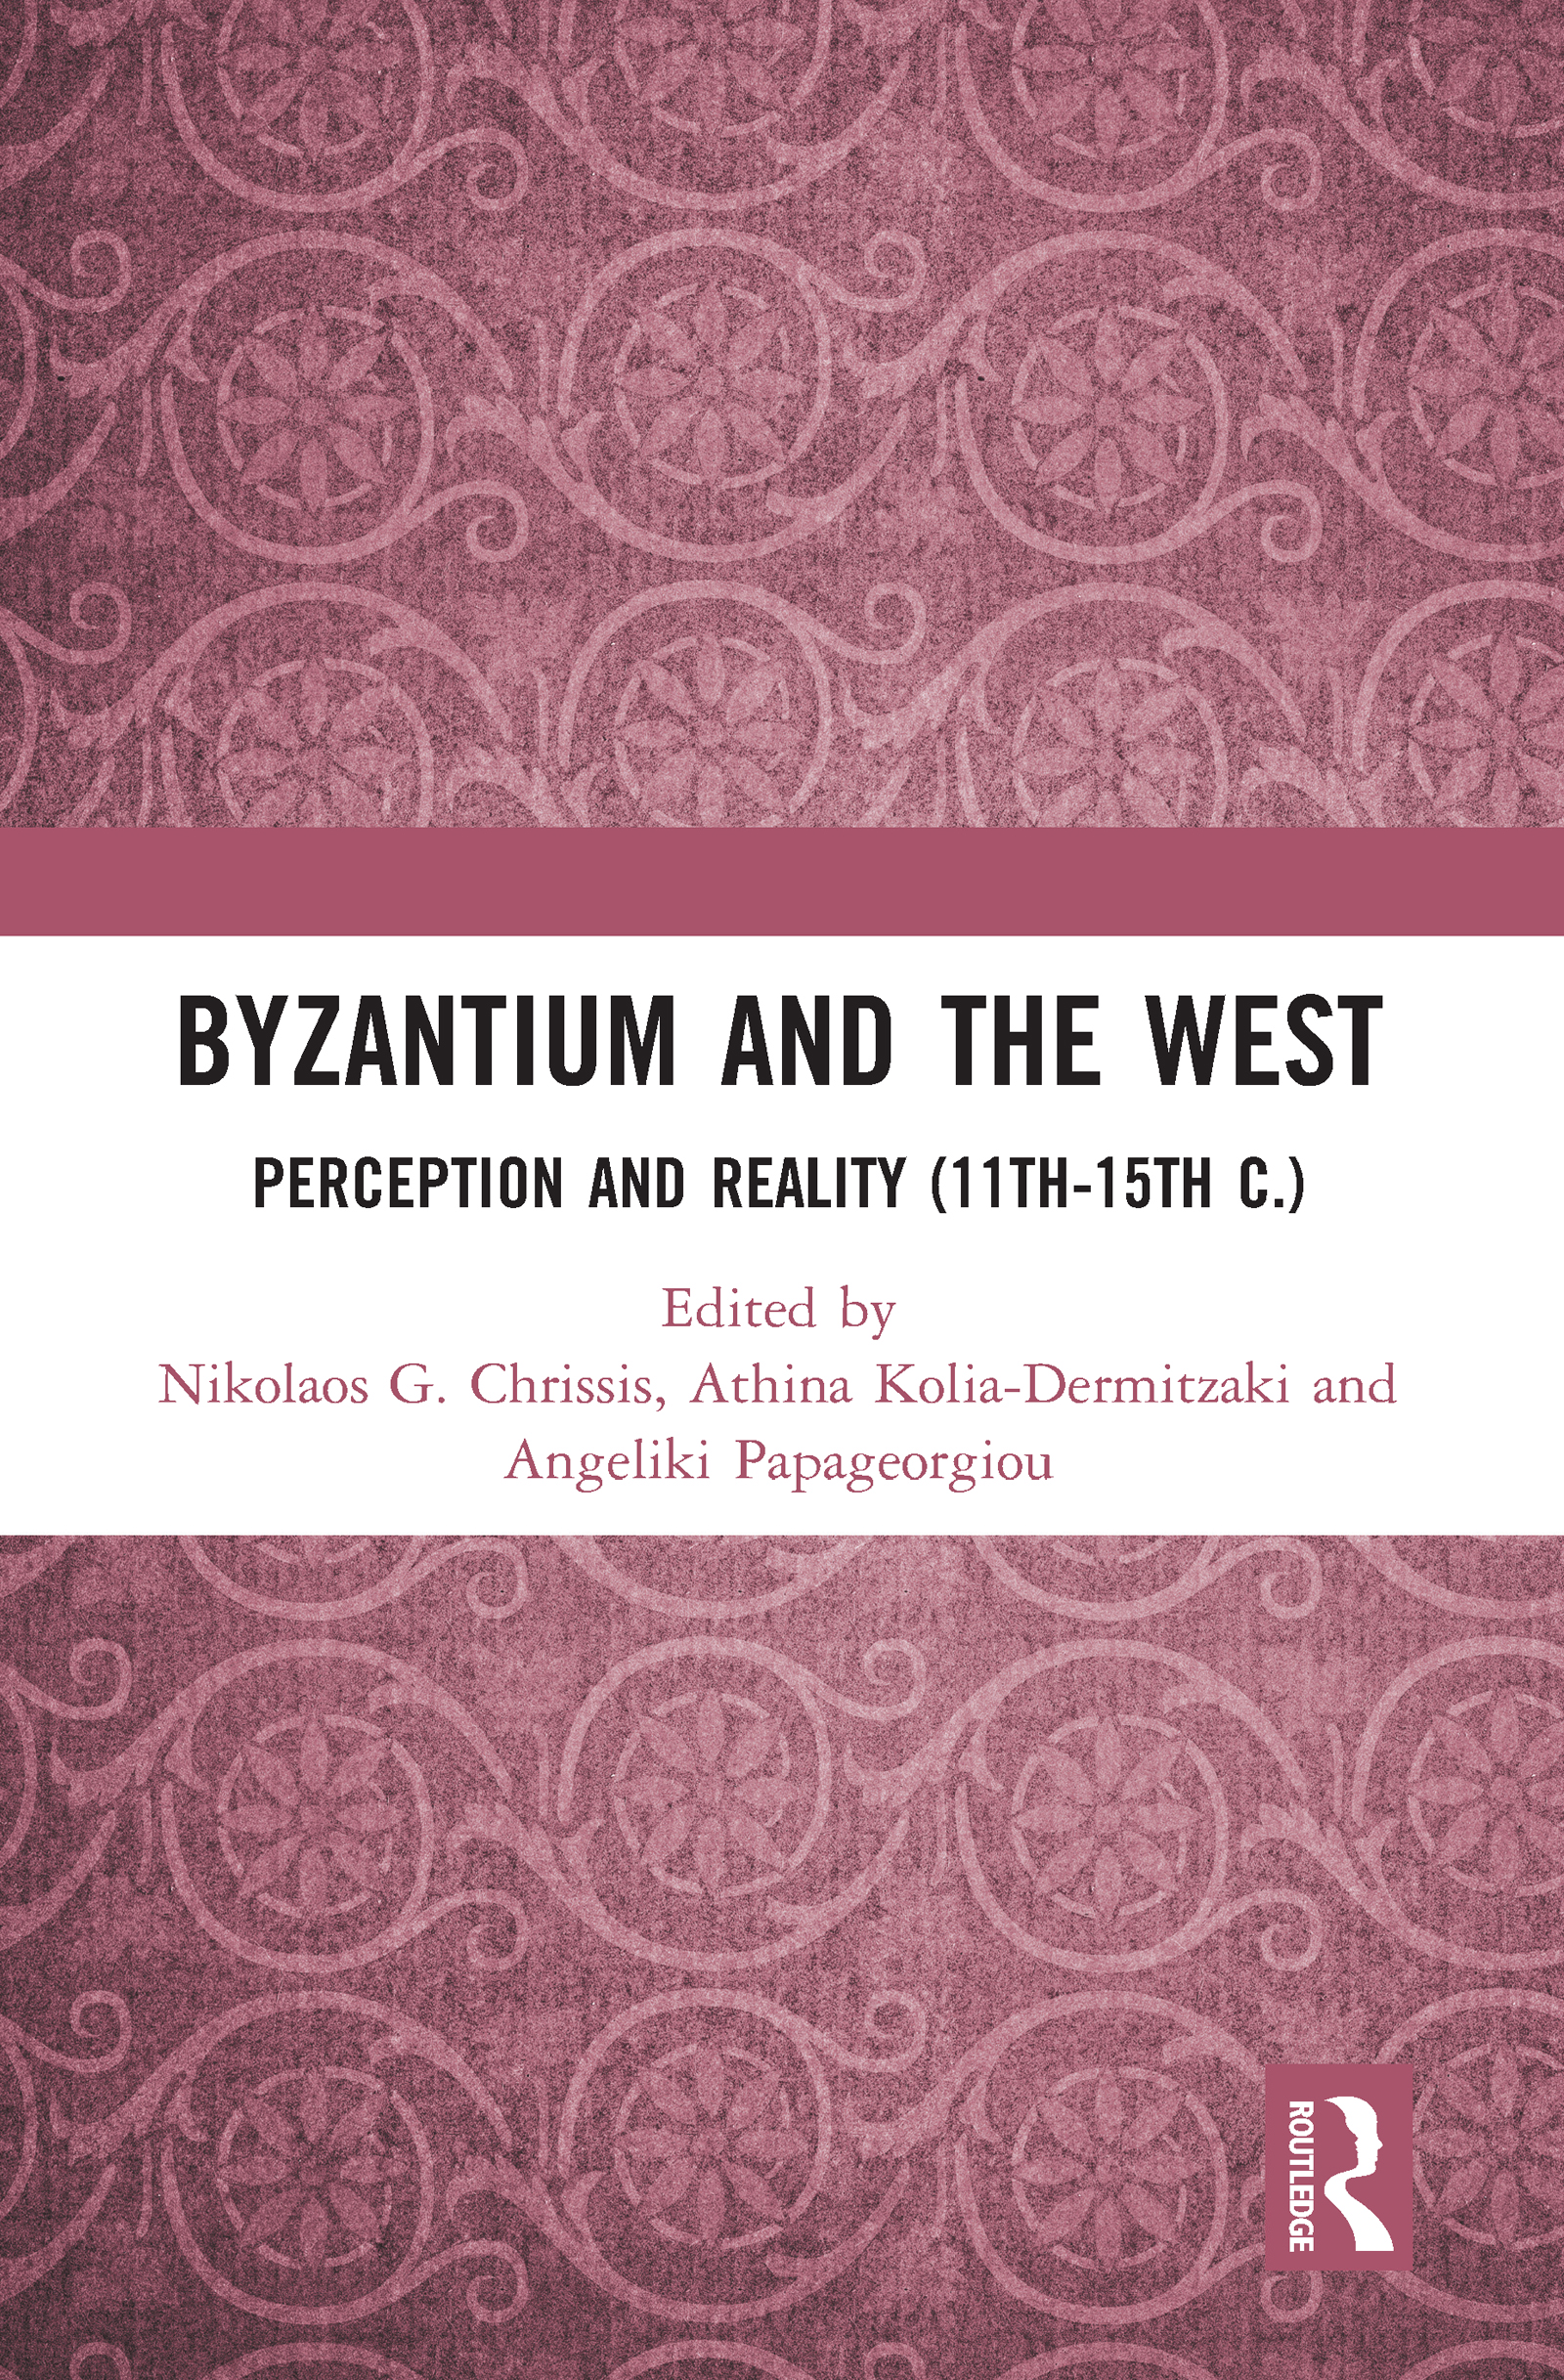 Byzantium and the West